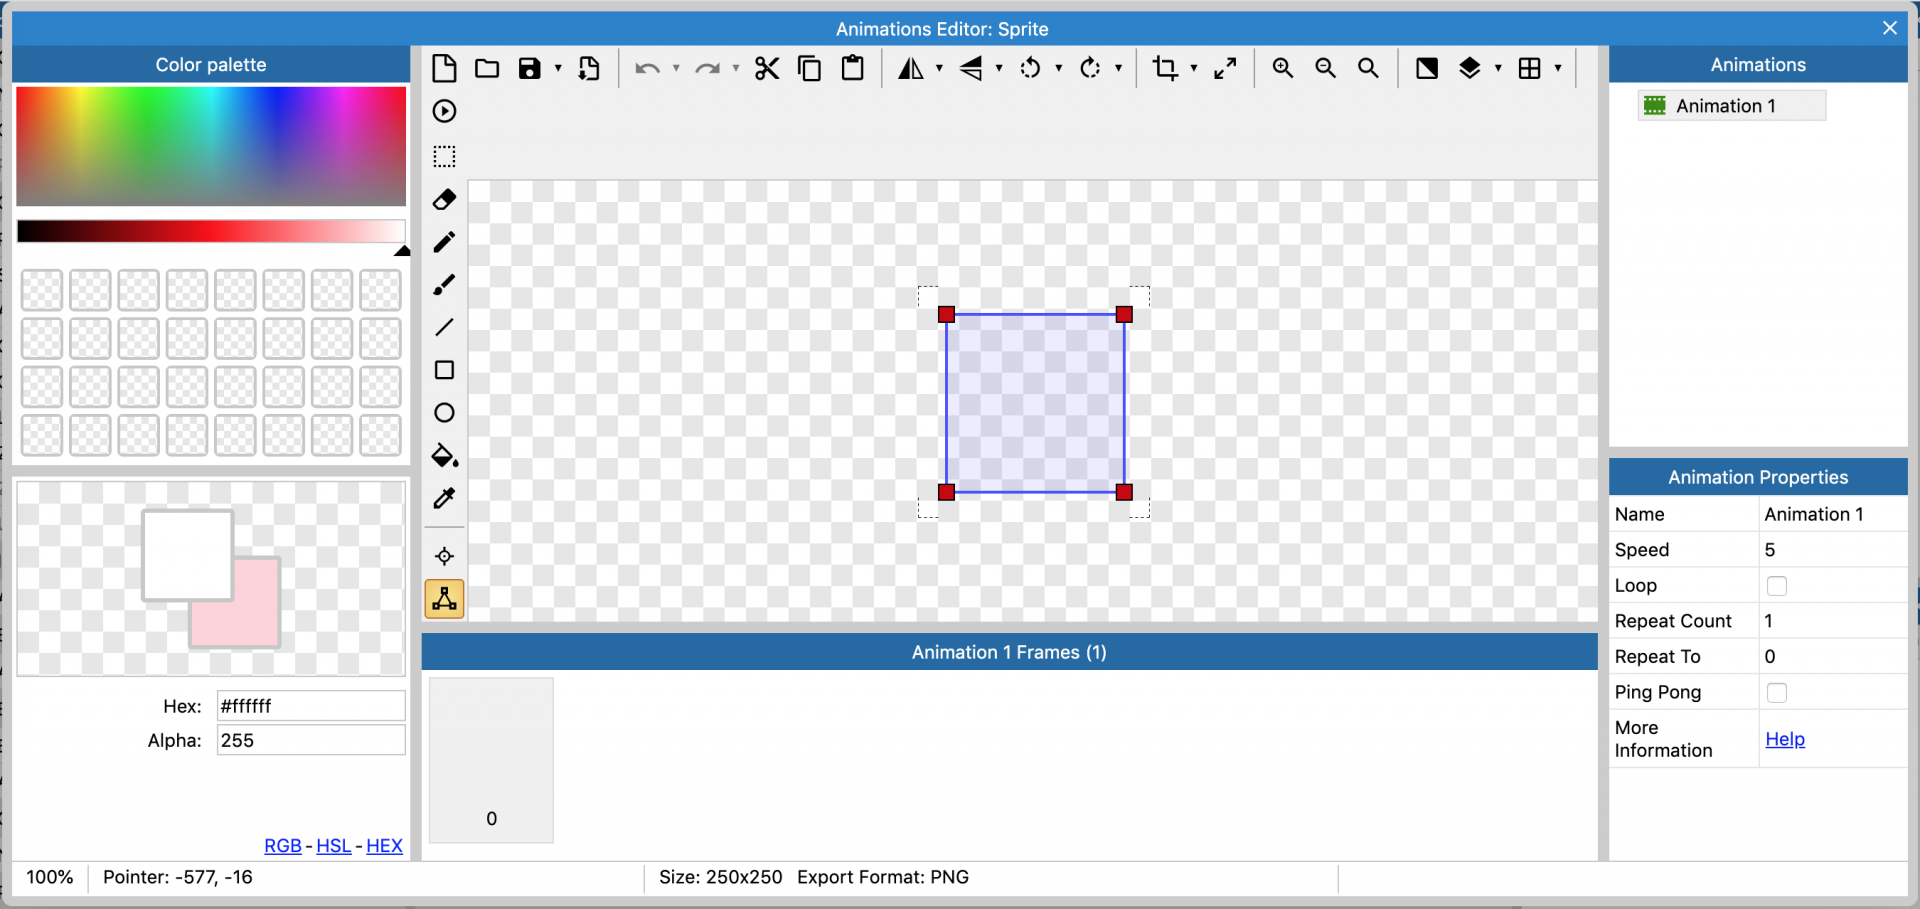 Screenshot of the Construct 3 Animations Editor.